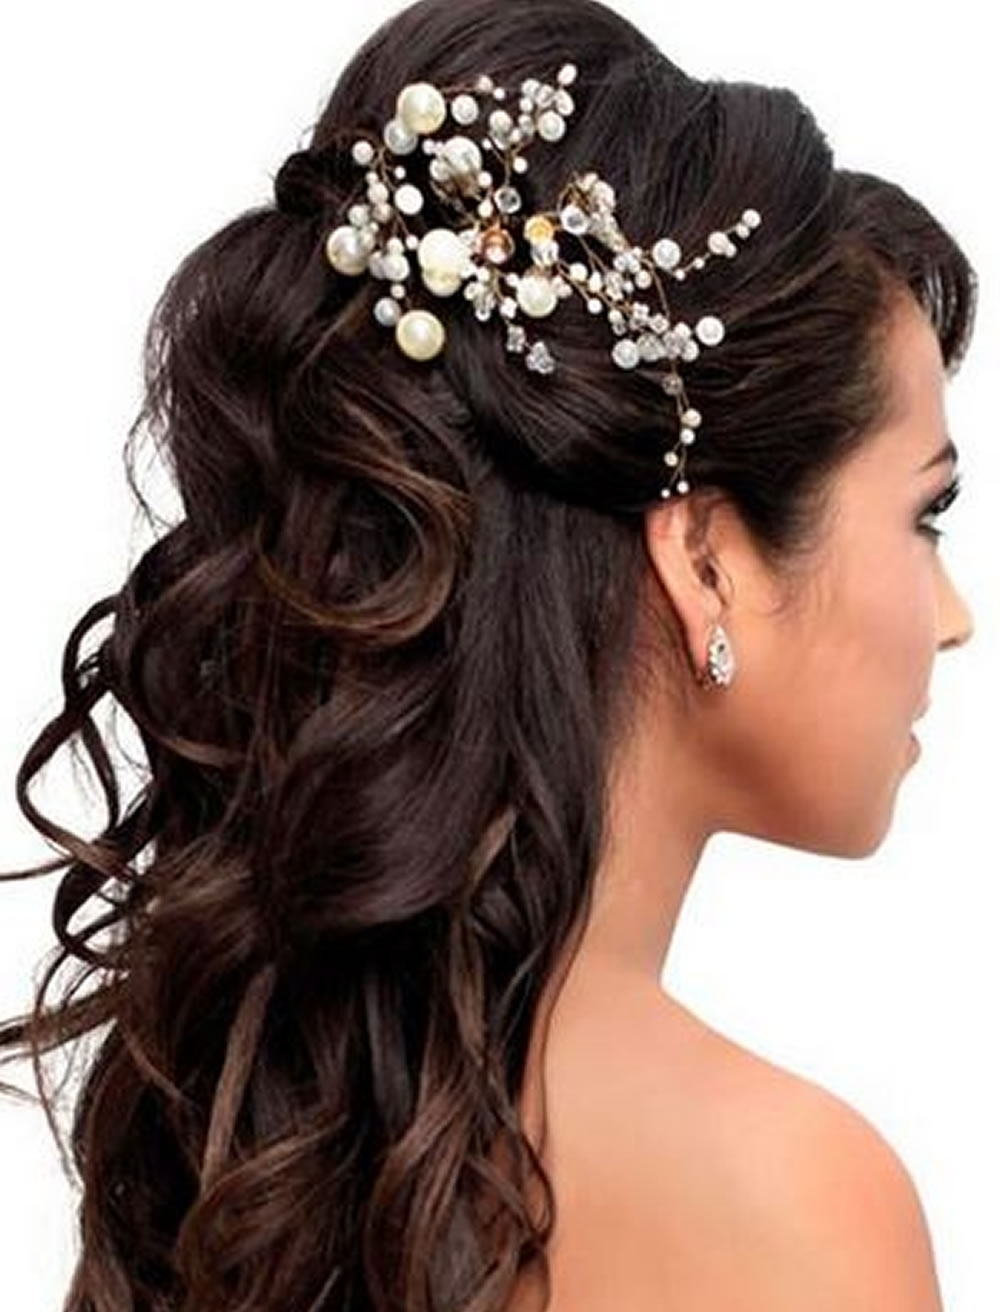 Wedding Hairstyles For Long Hair Summer 2018 2019 – Hairzstyle Regarding Most Current Summer Wedding Hairstyles For Long Hair (View 14 of 15)